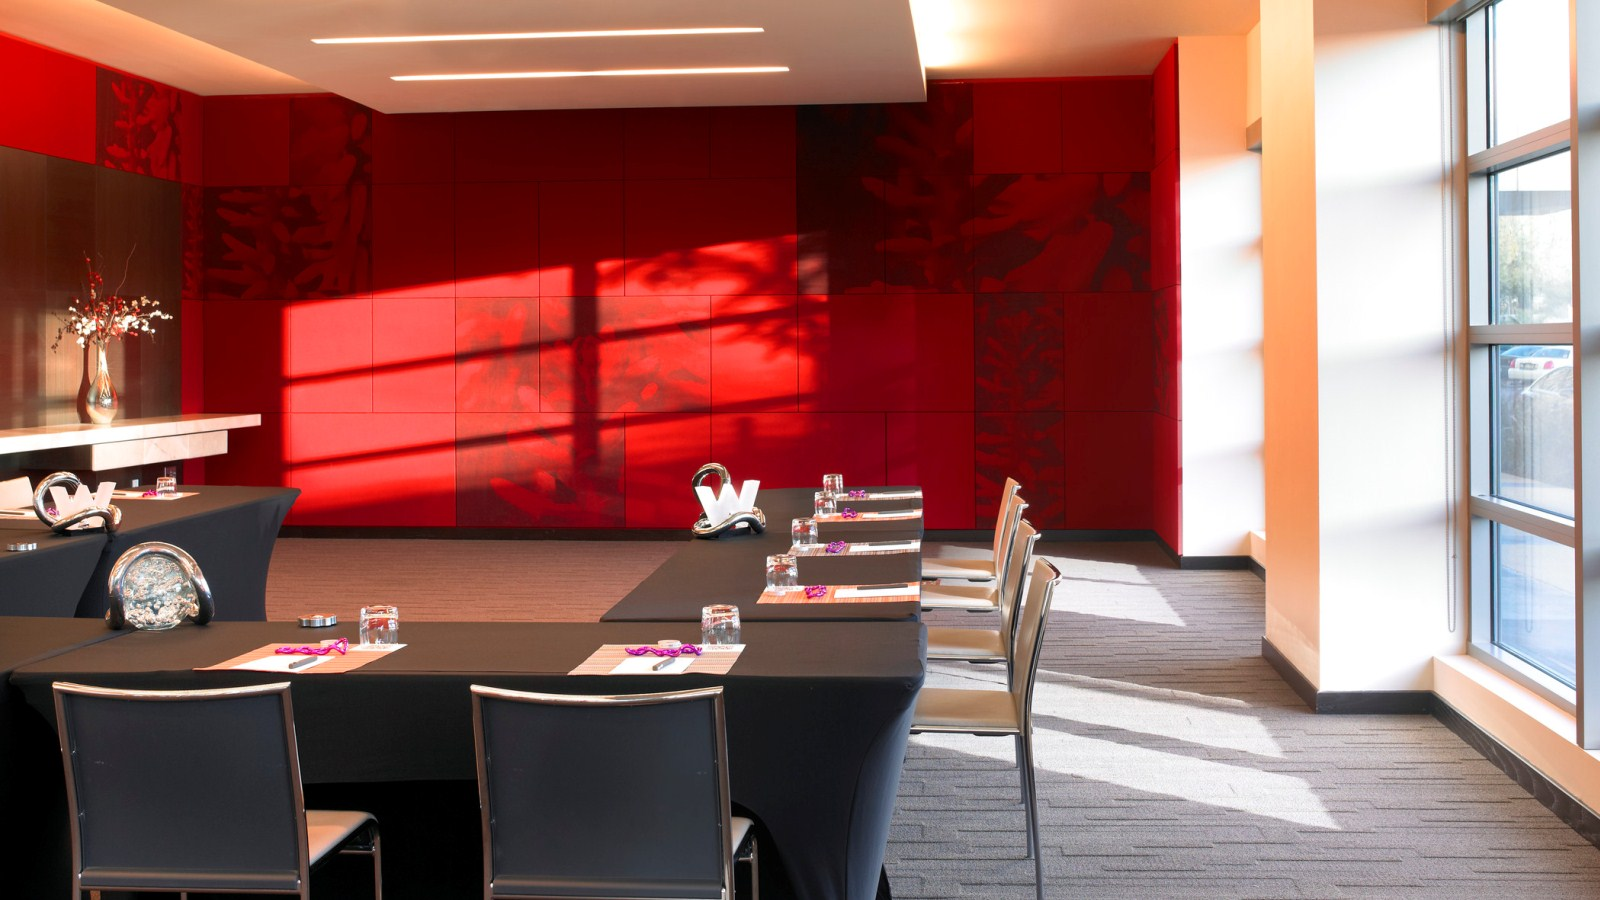 Scottsdale Hotel Meeting Rooms - Meetings